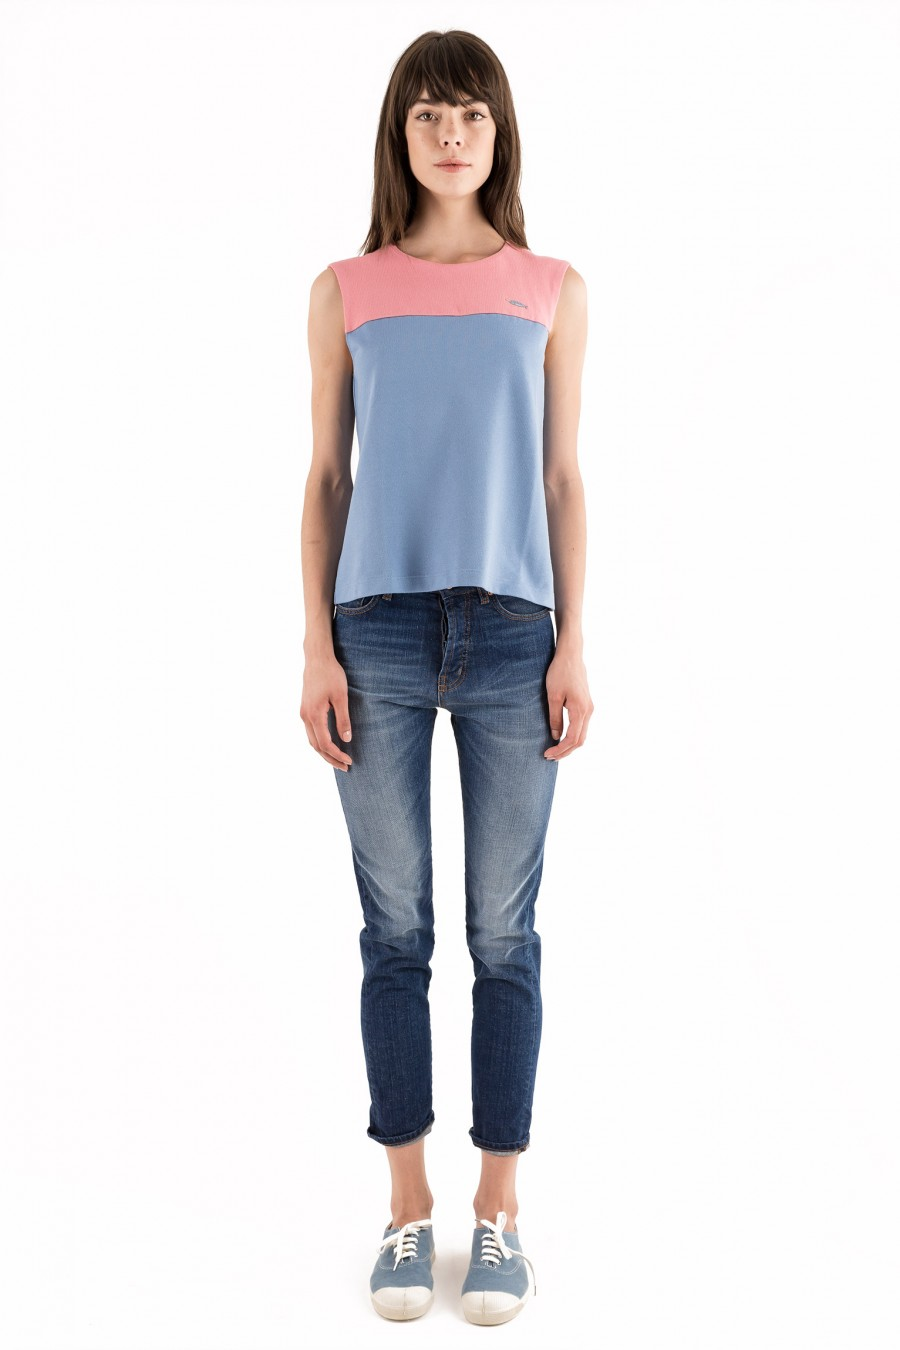 Pink and light blue top